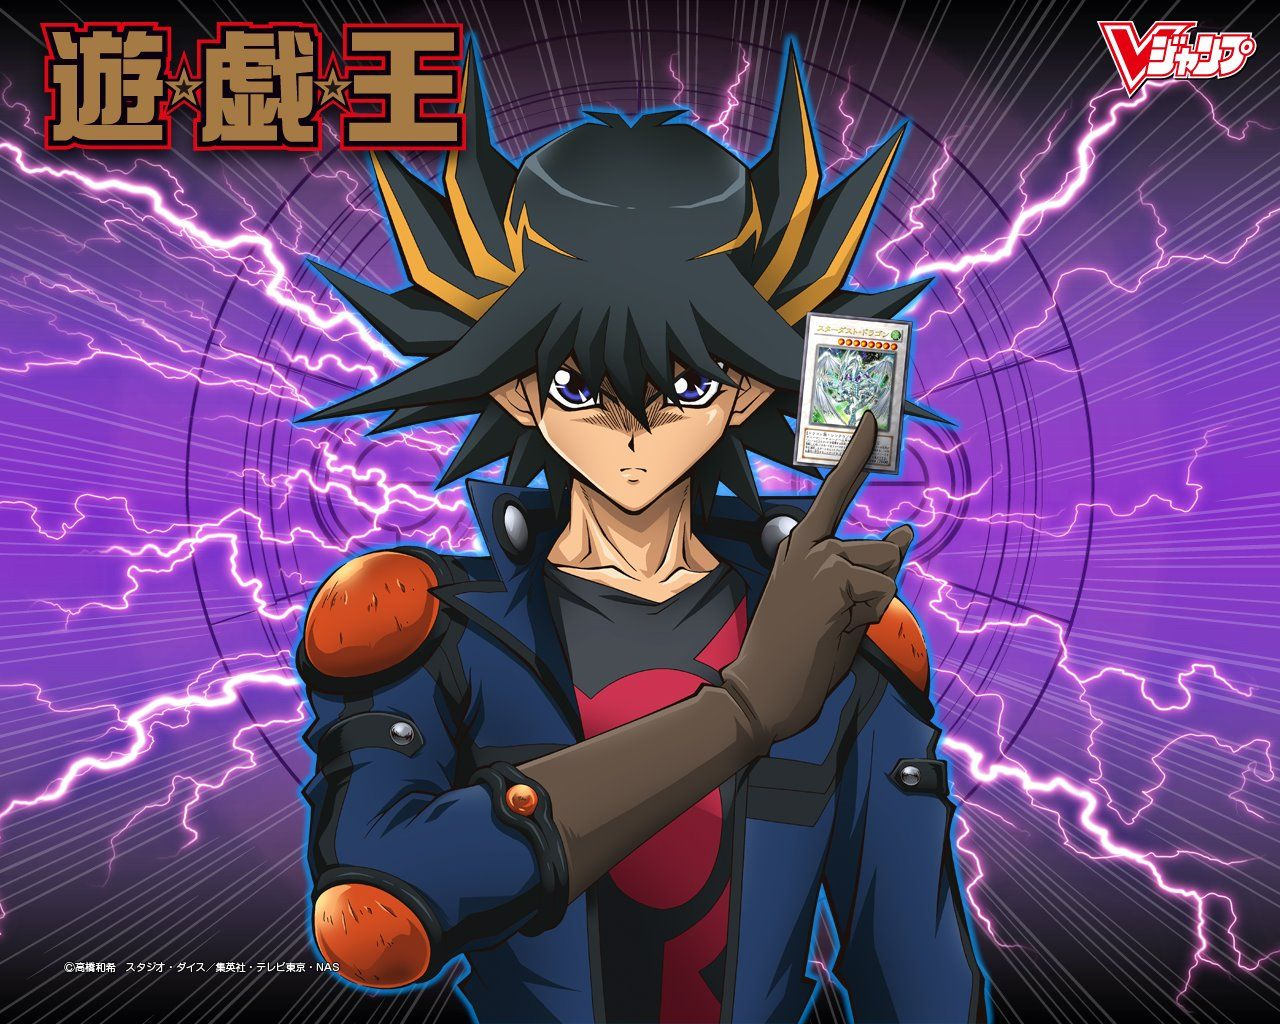 Millenium Ring Yu Gi Oh Anime Background Wallpapers on